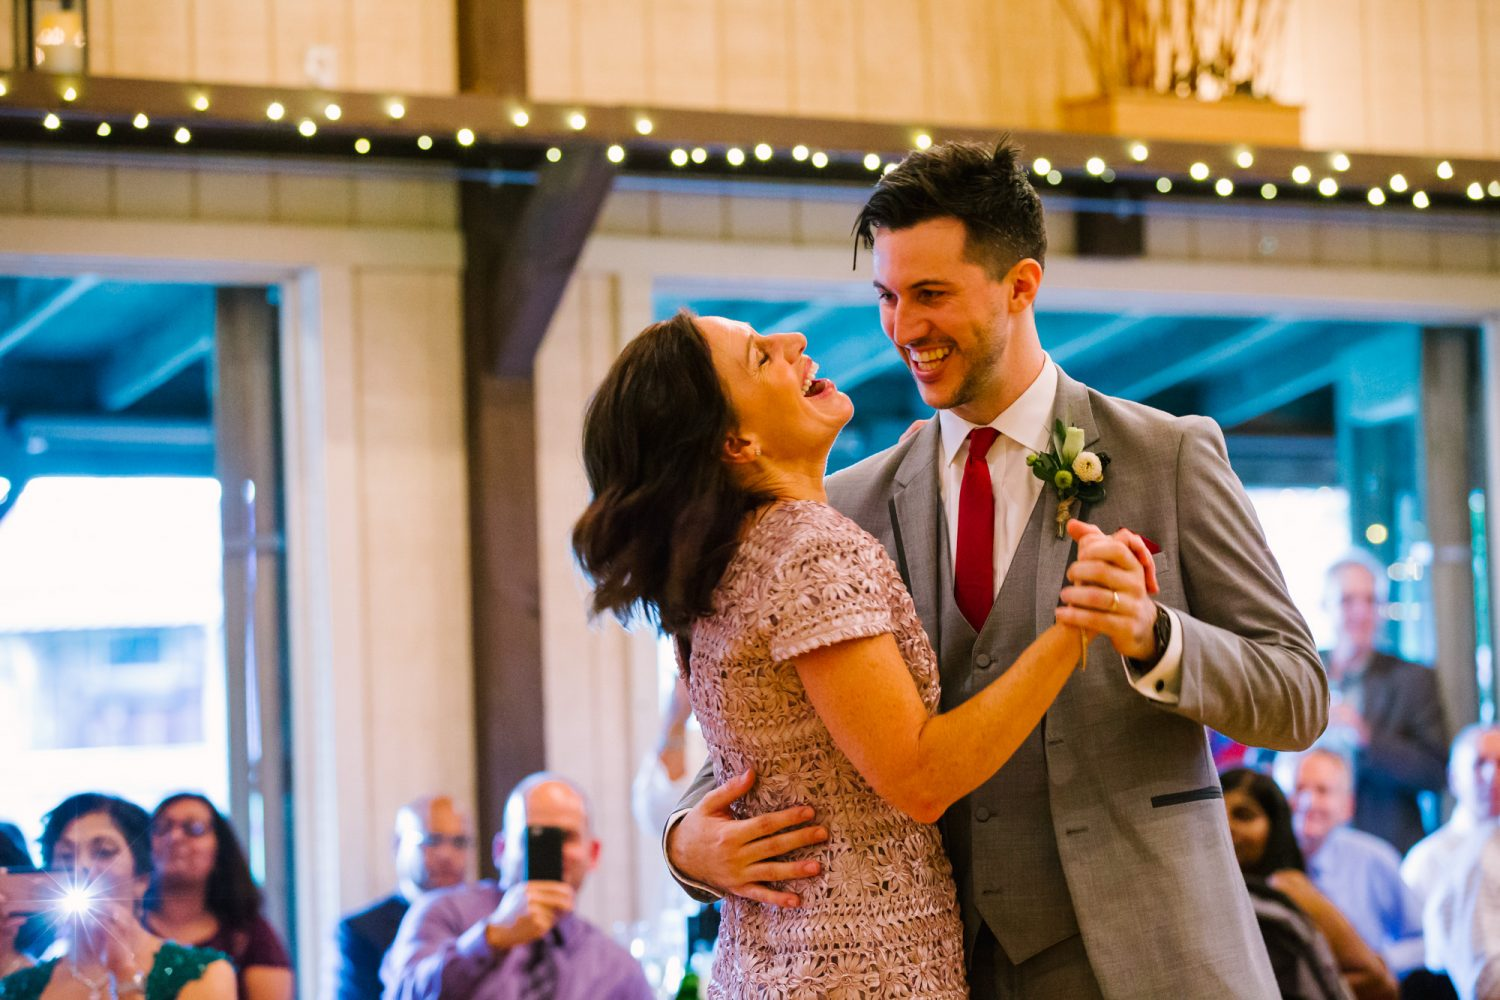 Waynesville NC Wedding Photography | Wedding Reception Mother Son Dance Laughing